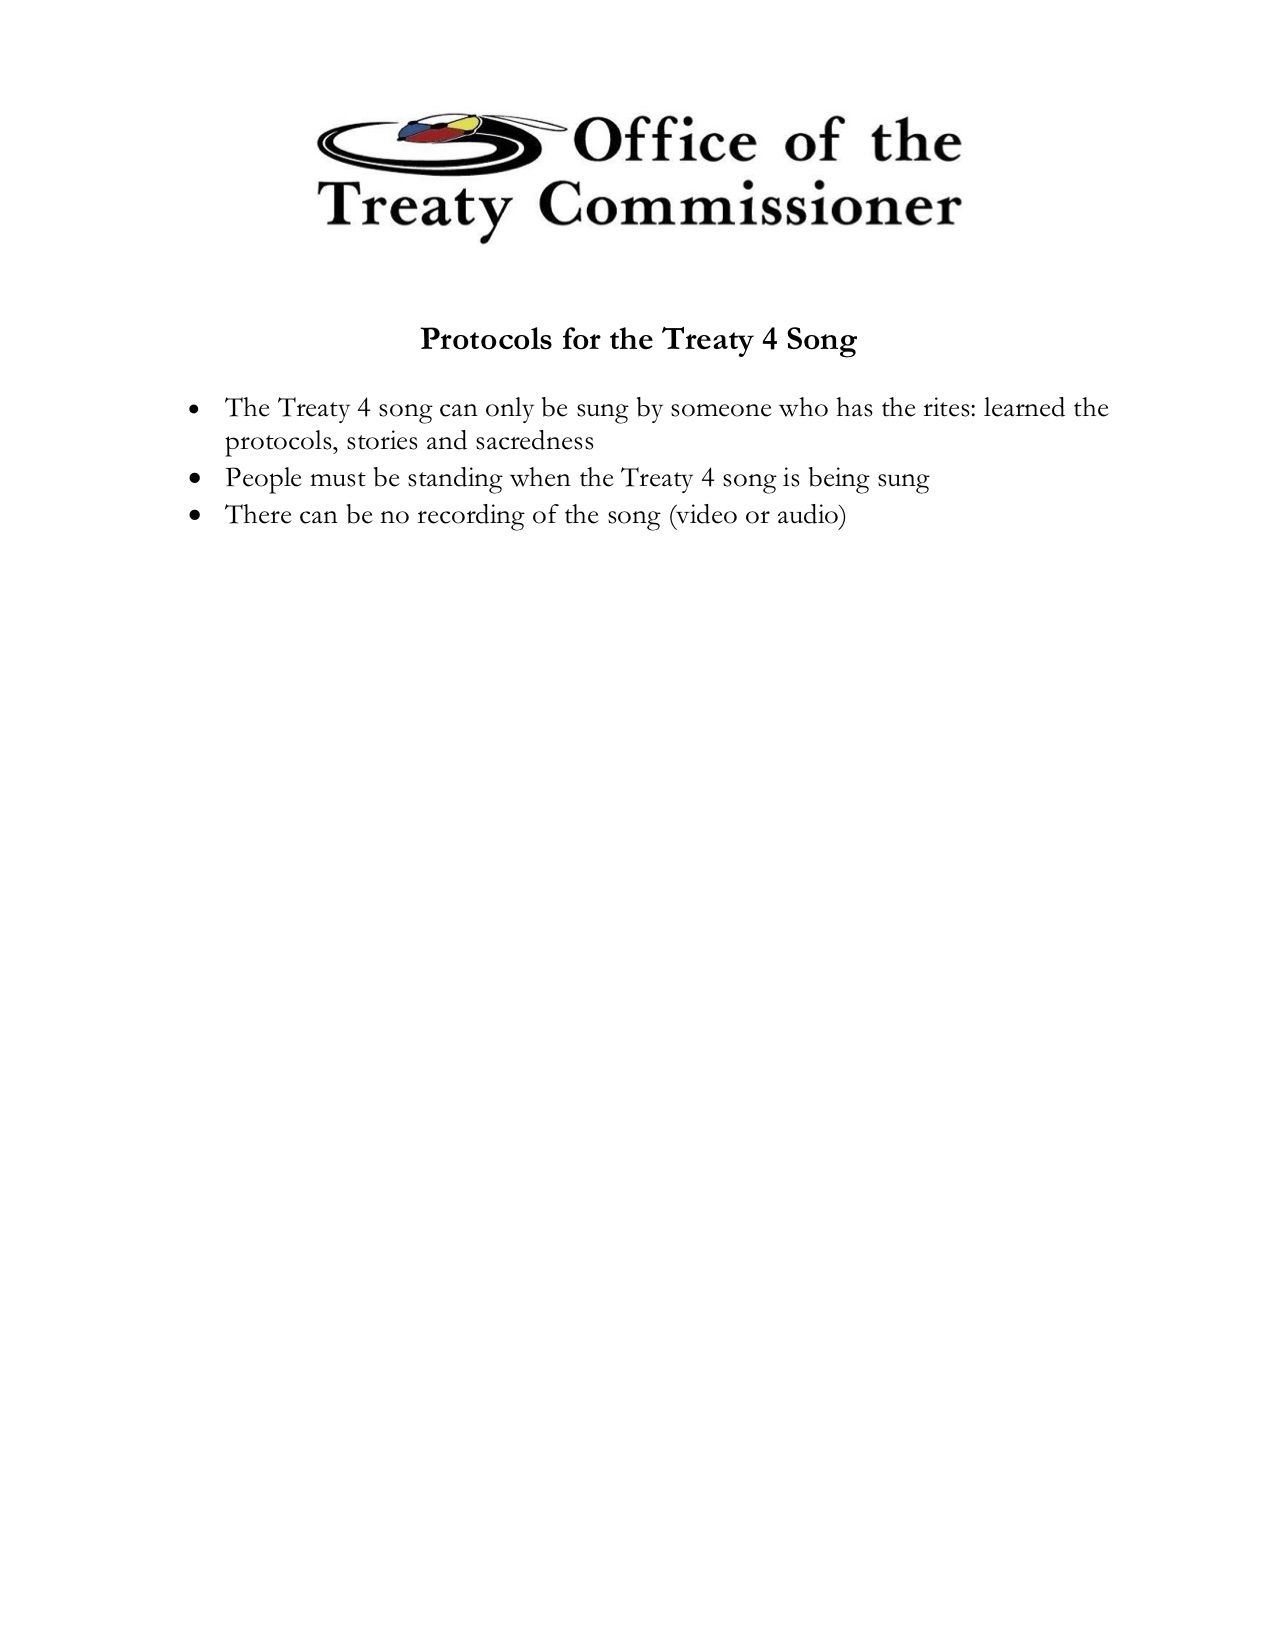 Protocols for the Treaty 4 Song